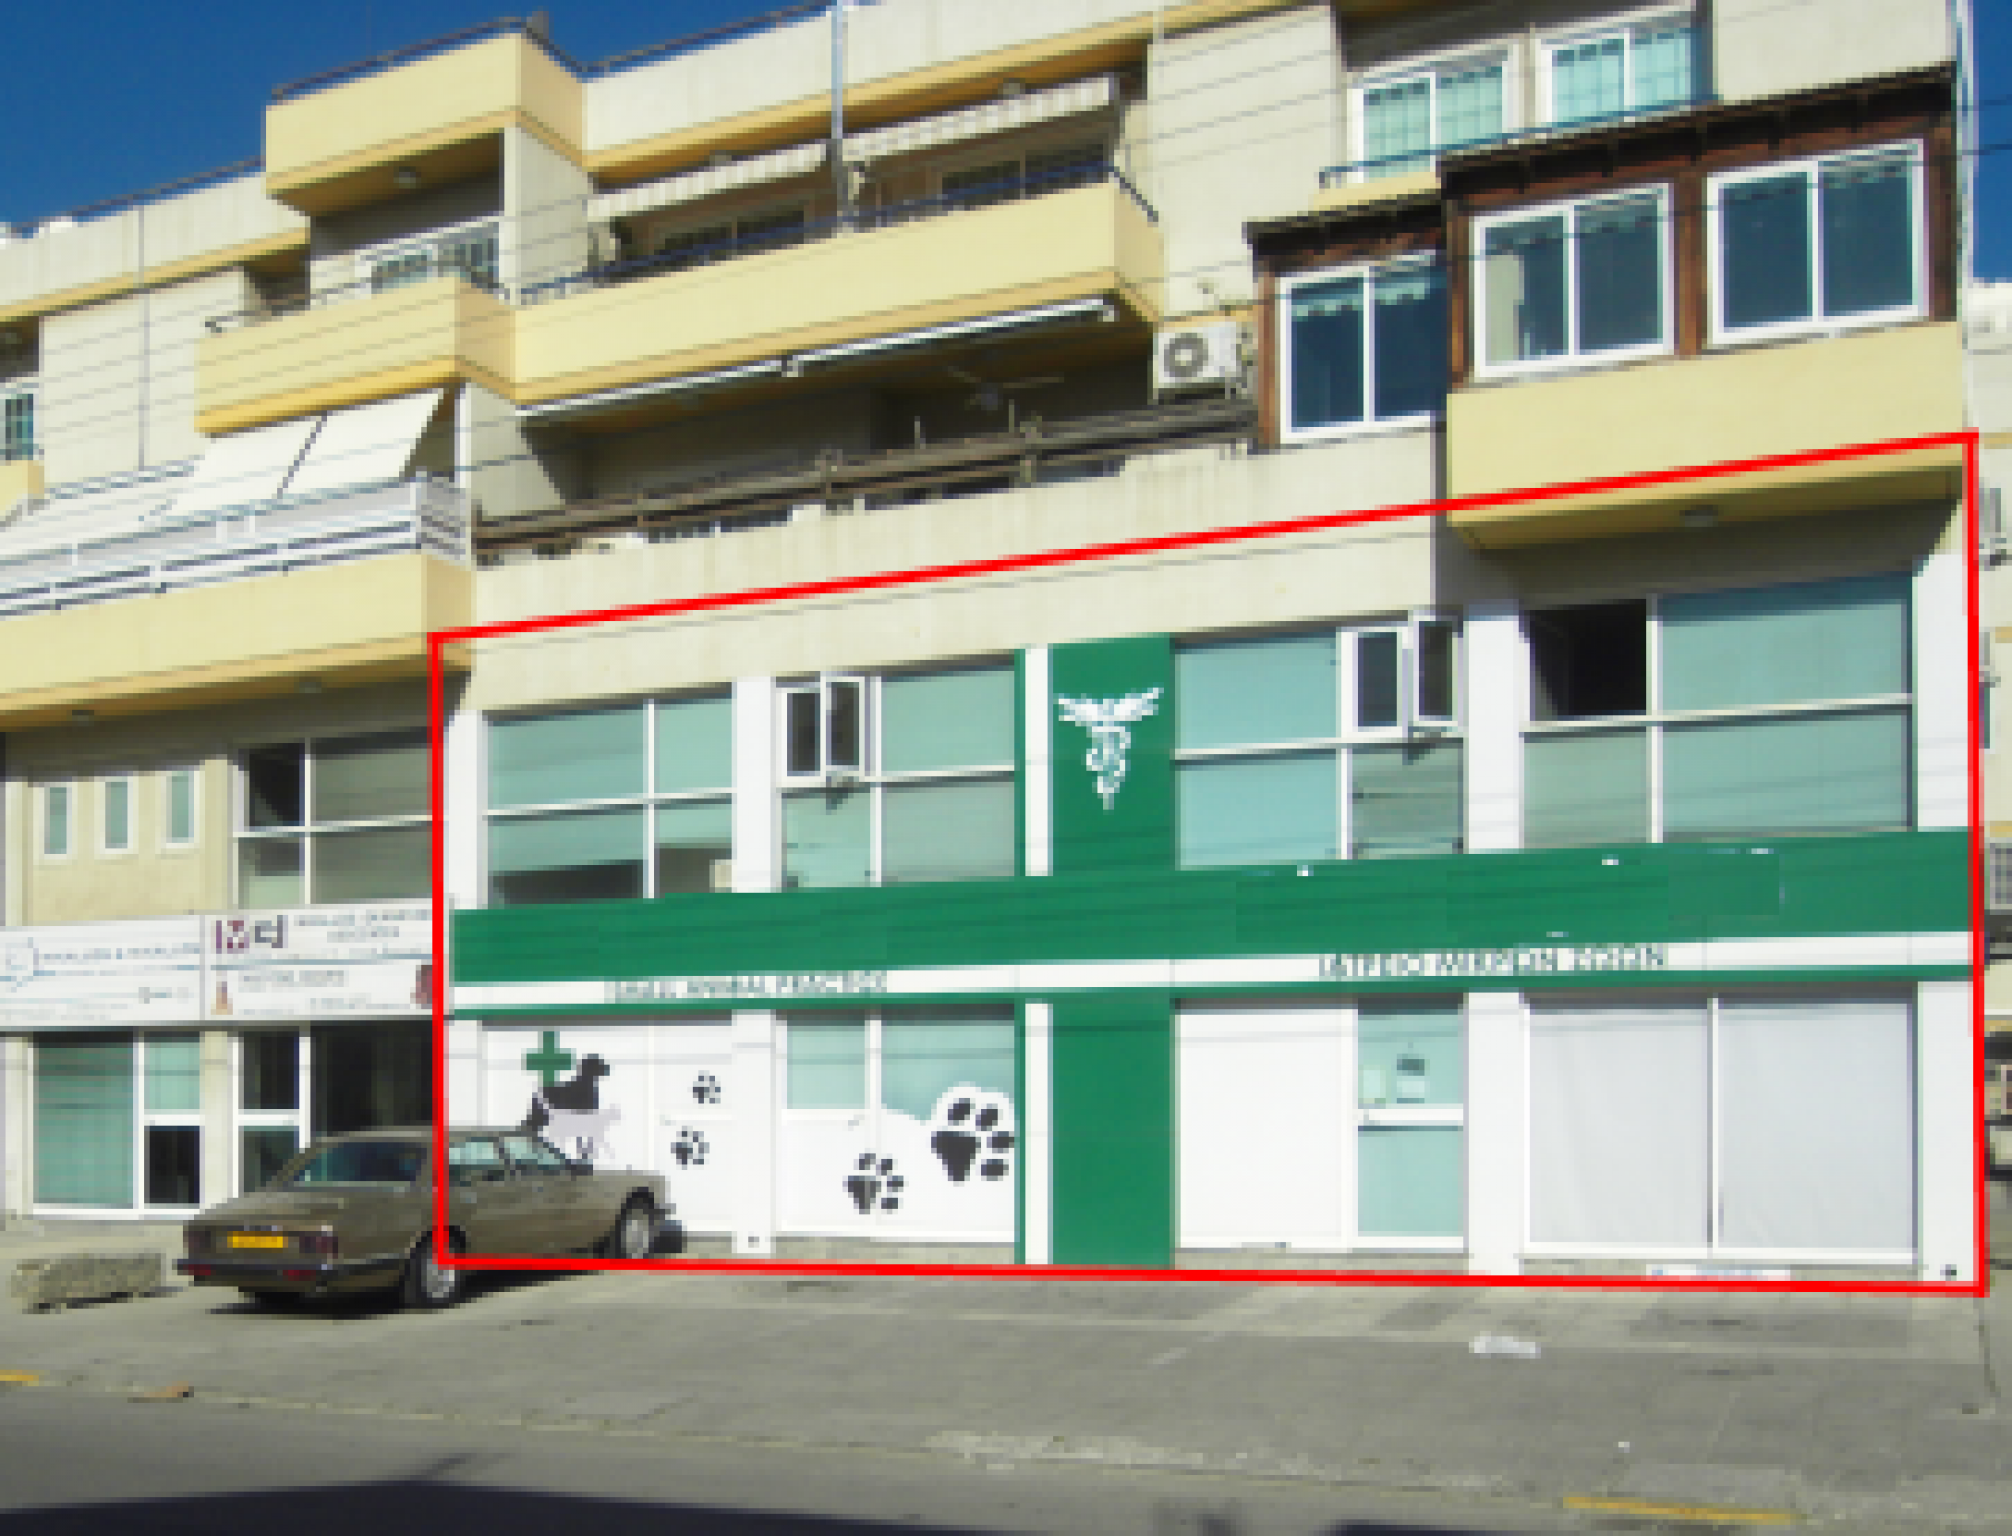 Four spans showroom for sale in Larnaca